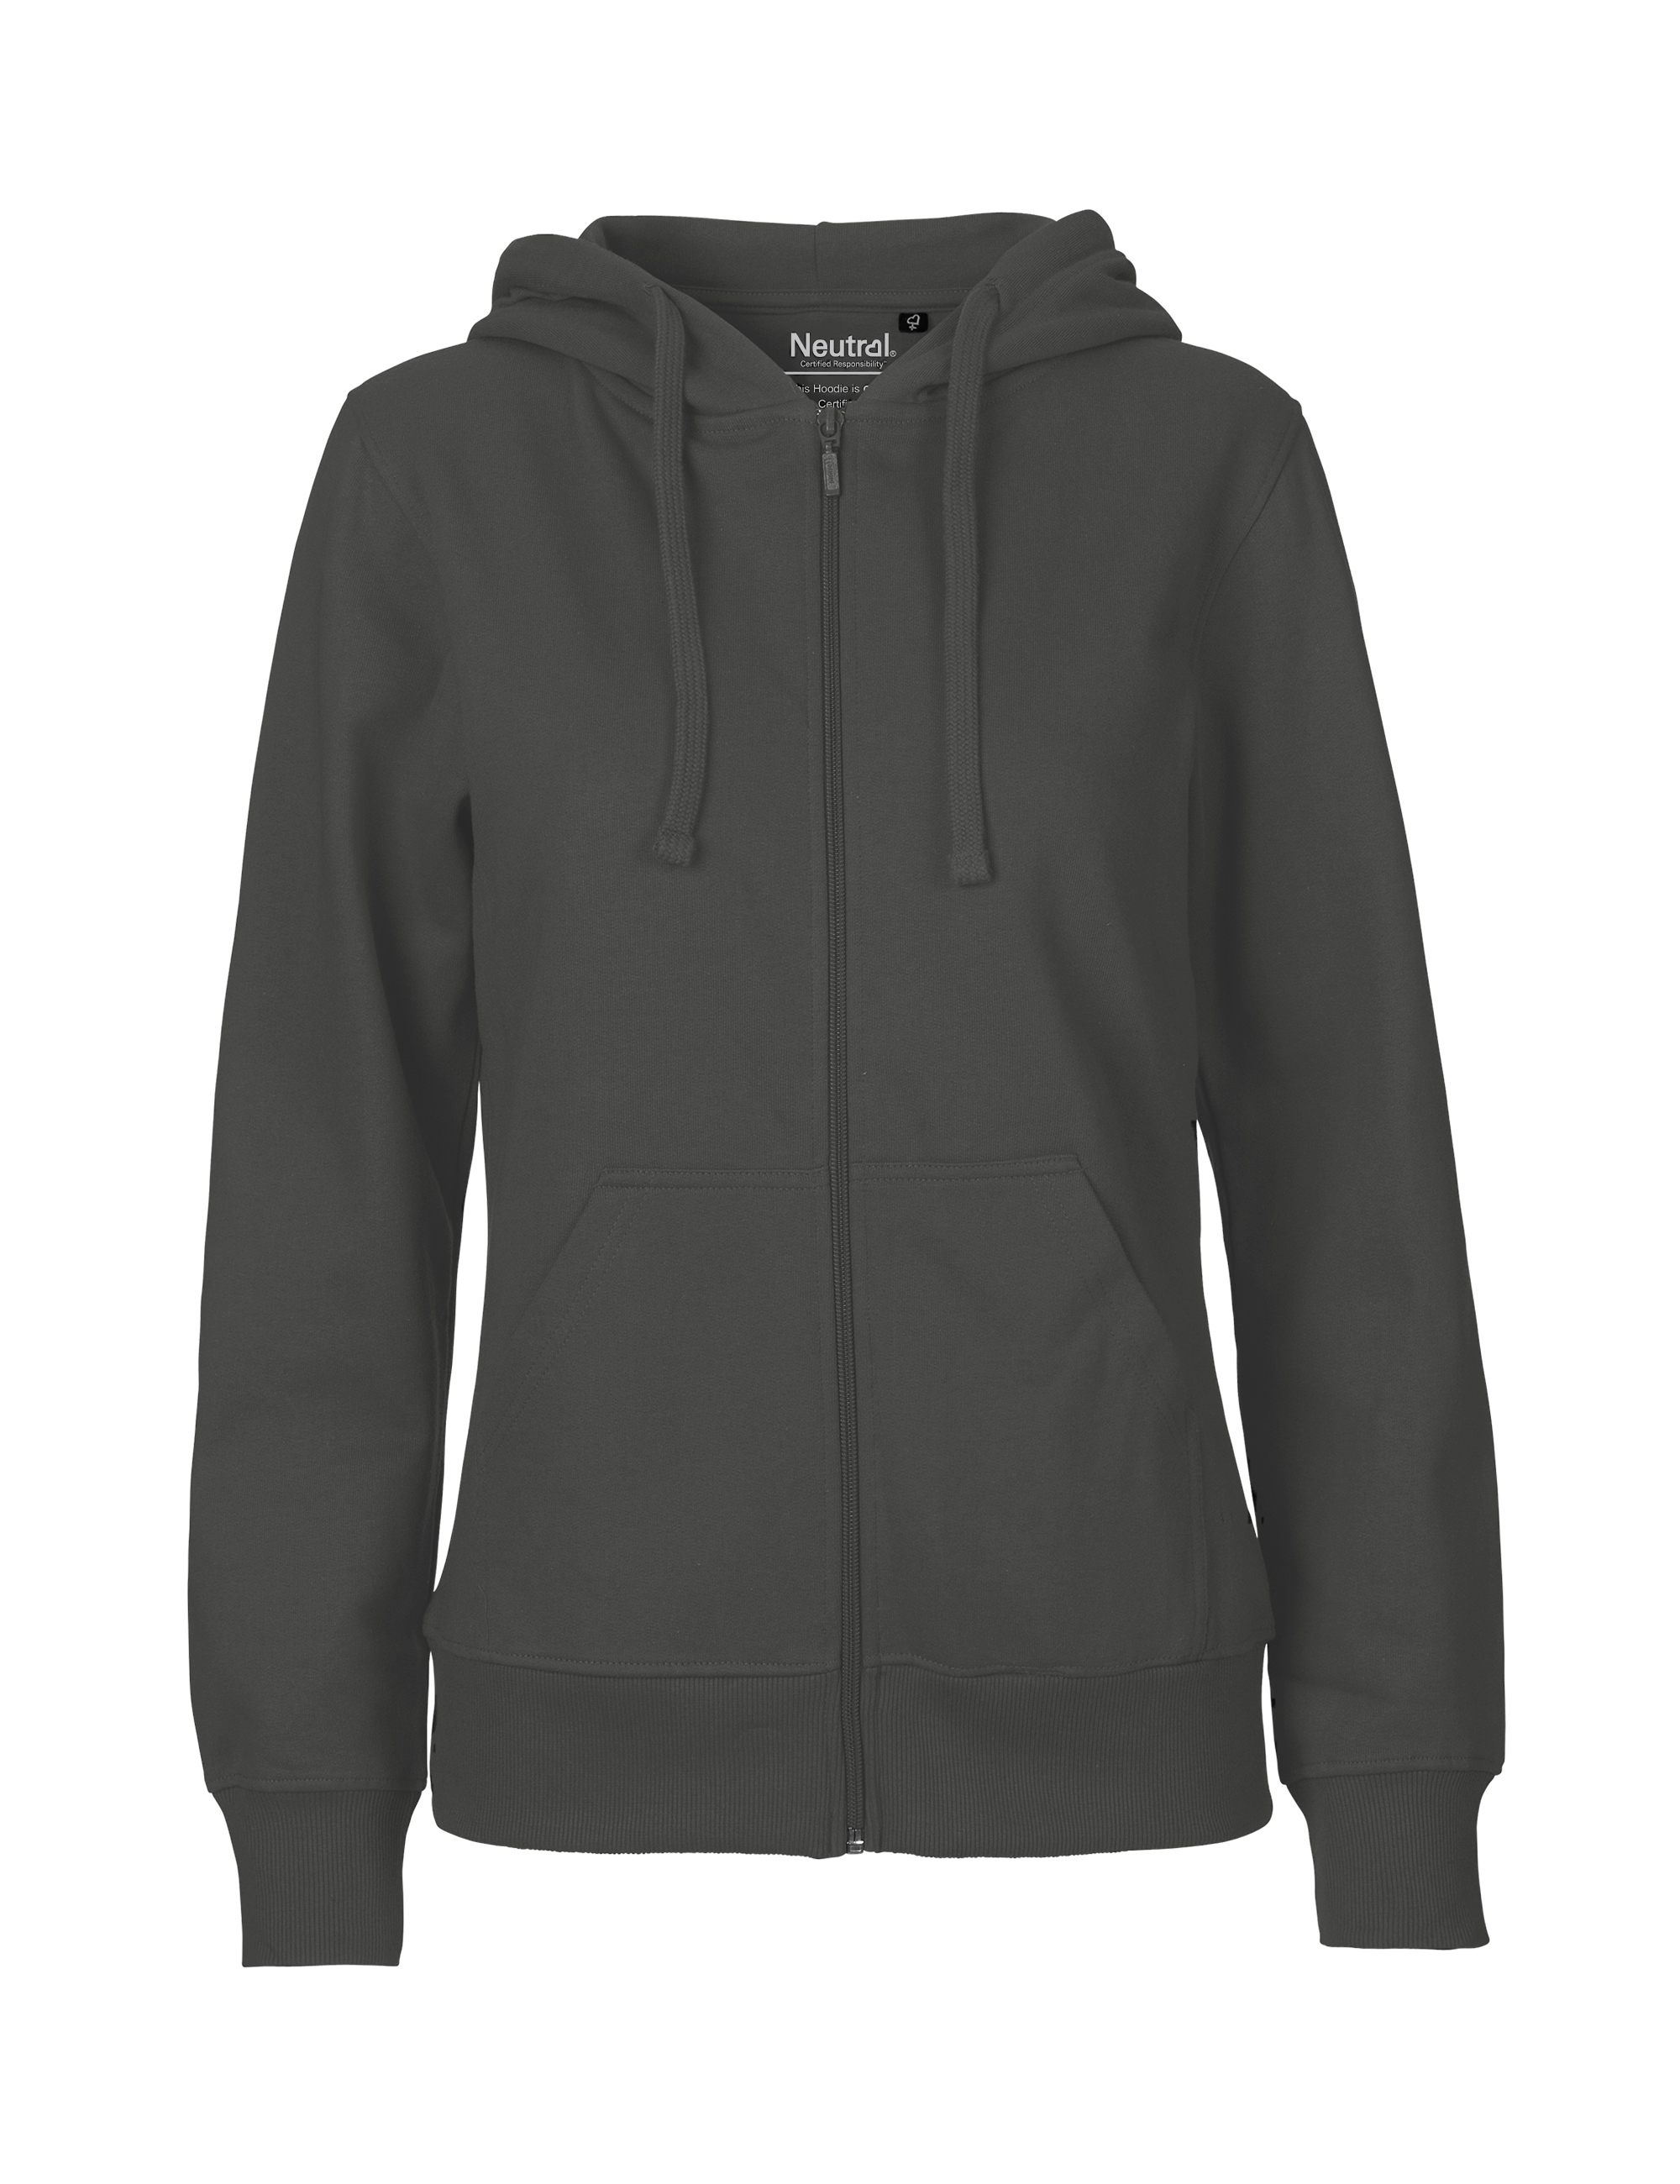 O83301 Ladies Hoodie w. Zip i Charcoal